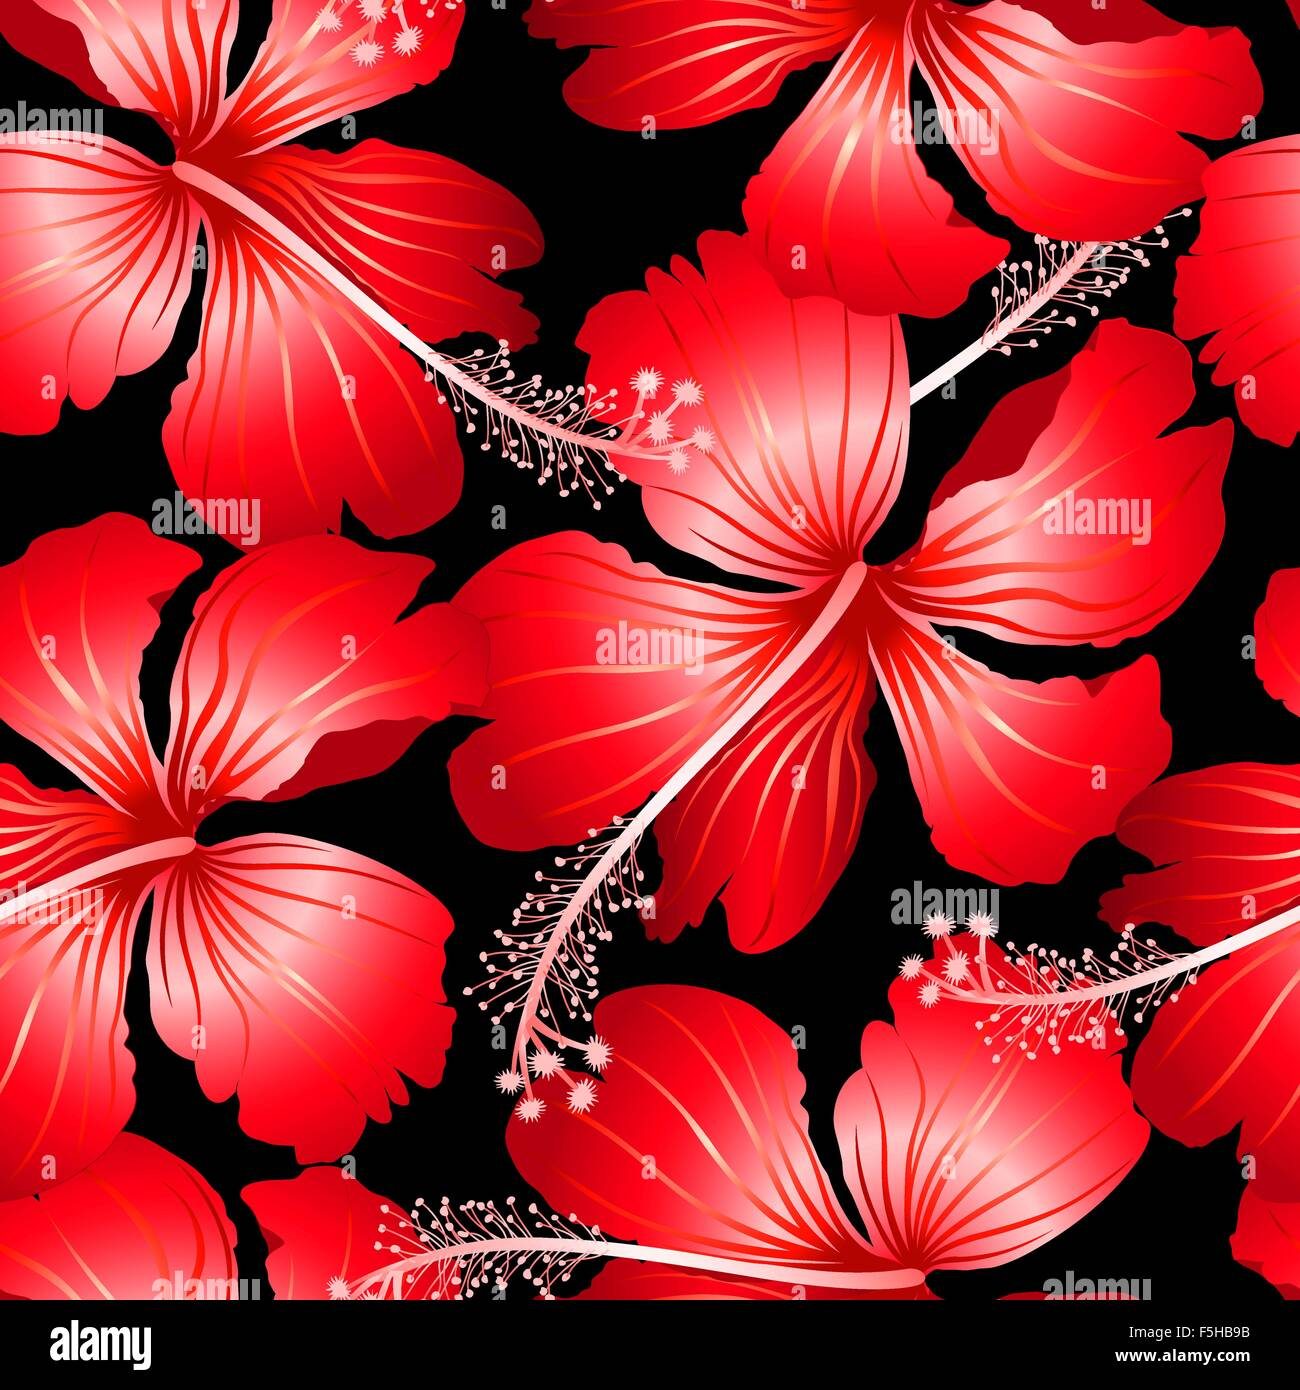 Red tropical hibiscus flowers with black background seamless pattern red tropical hibiscus flowers with black background seamless pattern izmirmasajfo